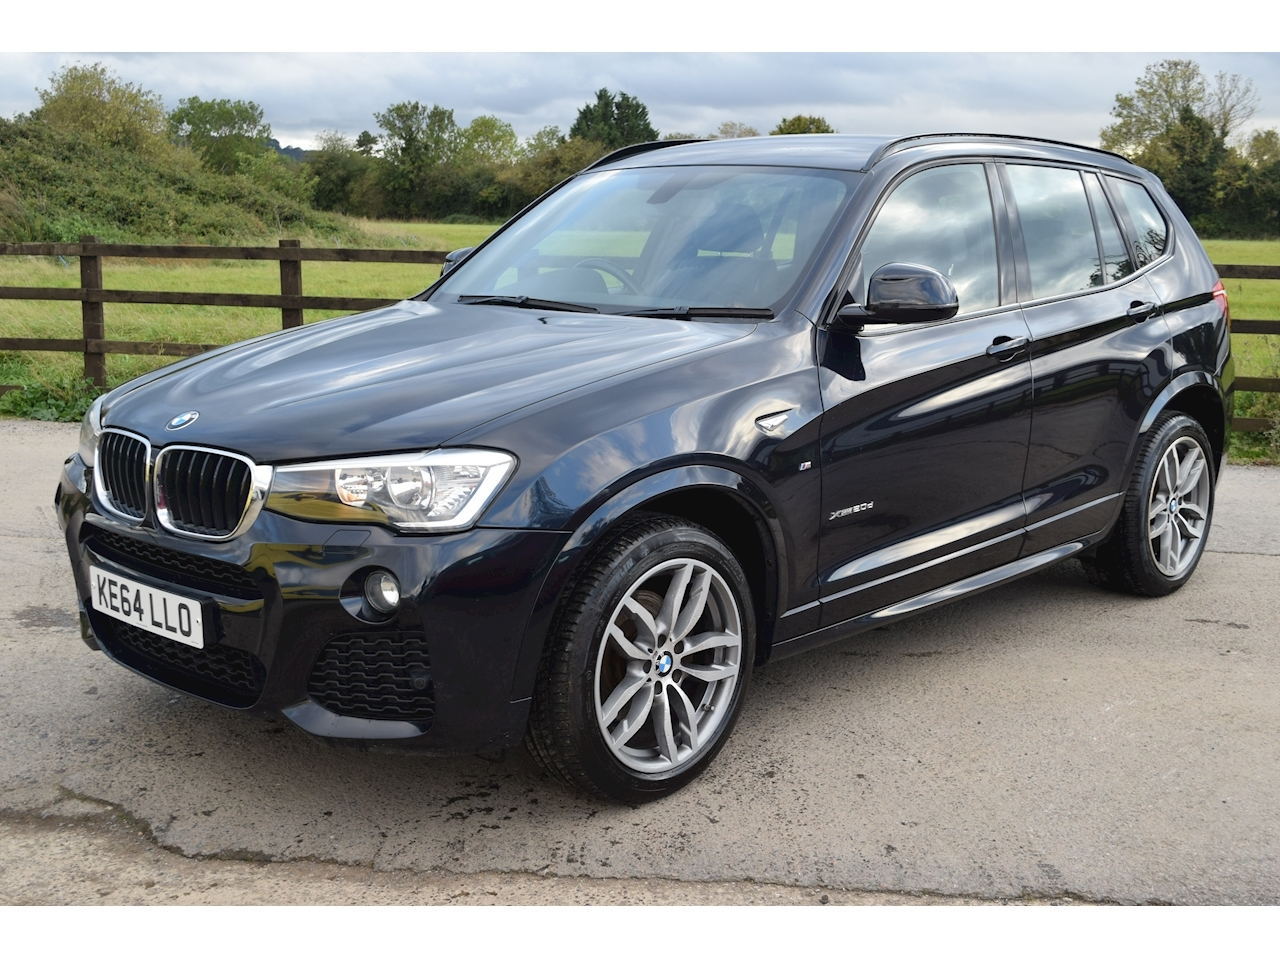 BMW X3 xDrive20d M Sport 2.0 5dr Estate Manual Diesel